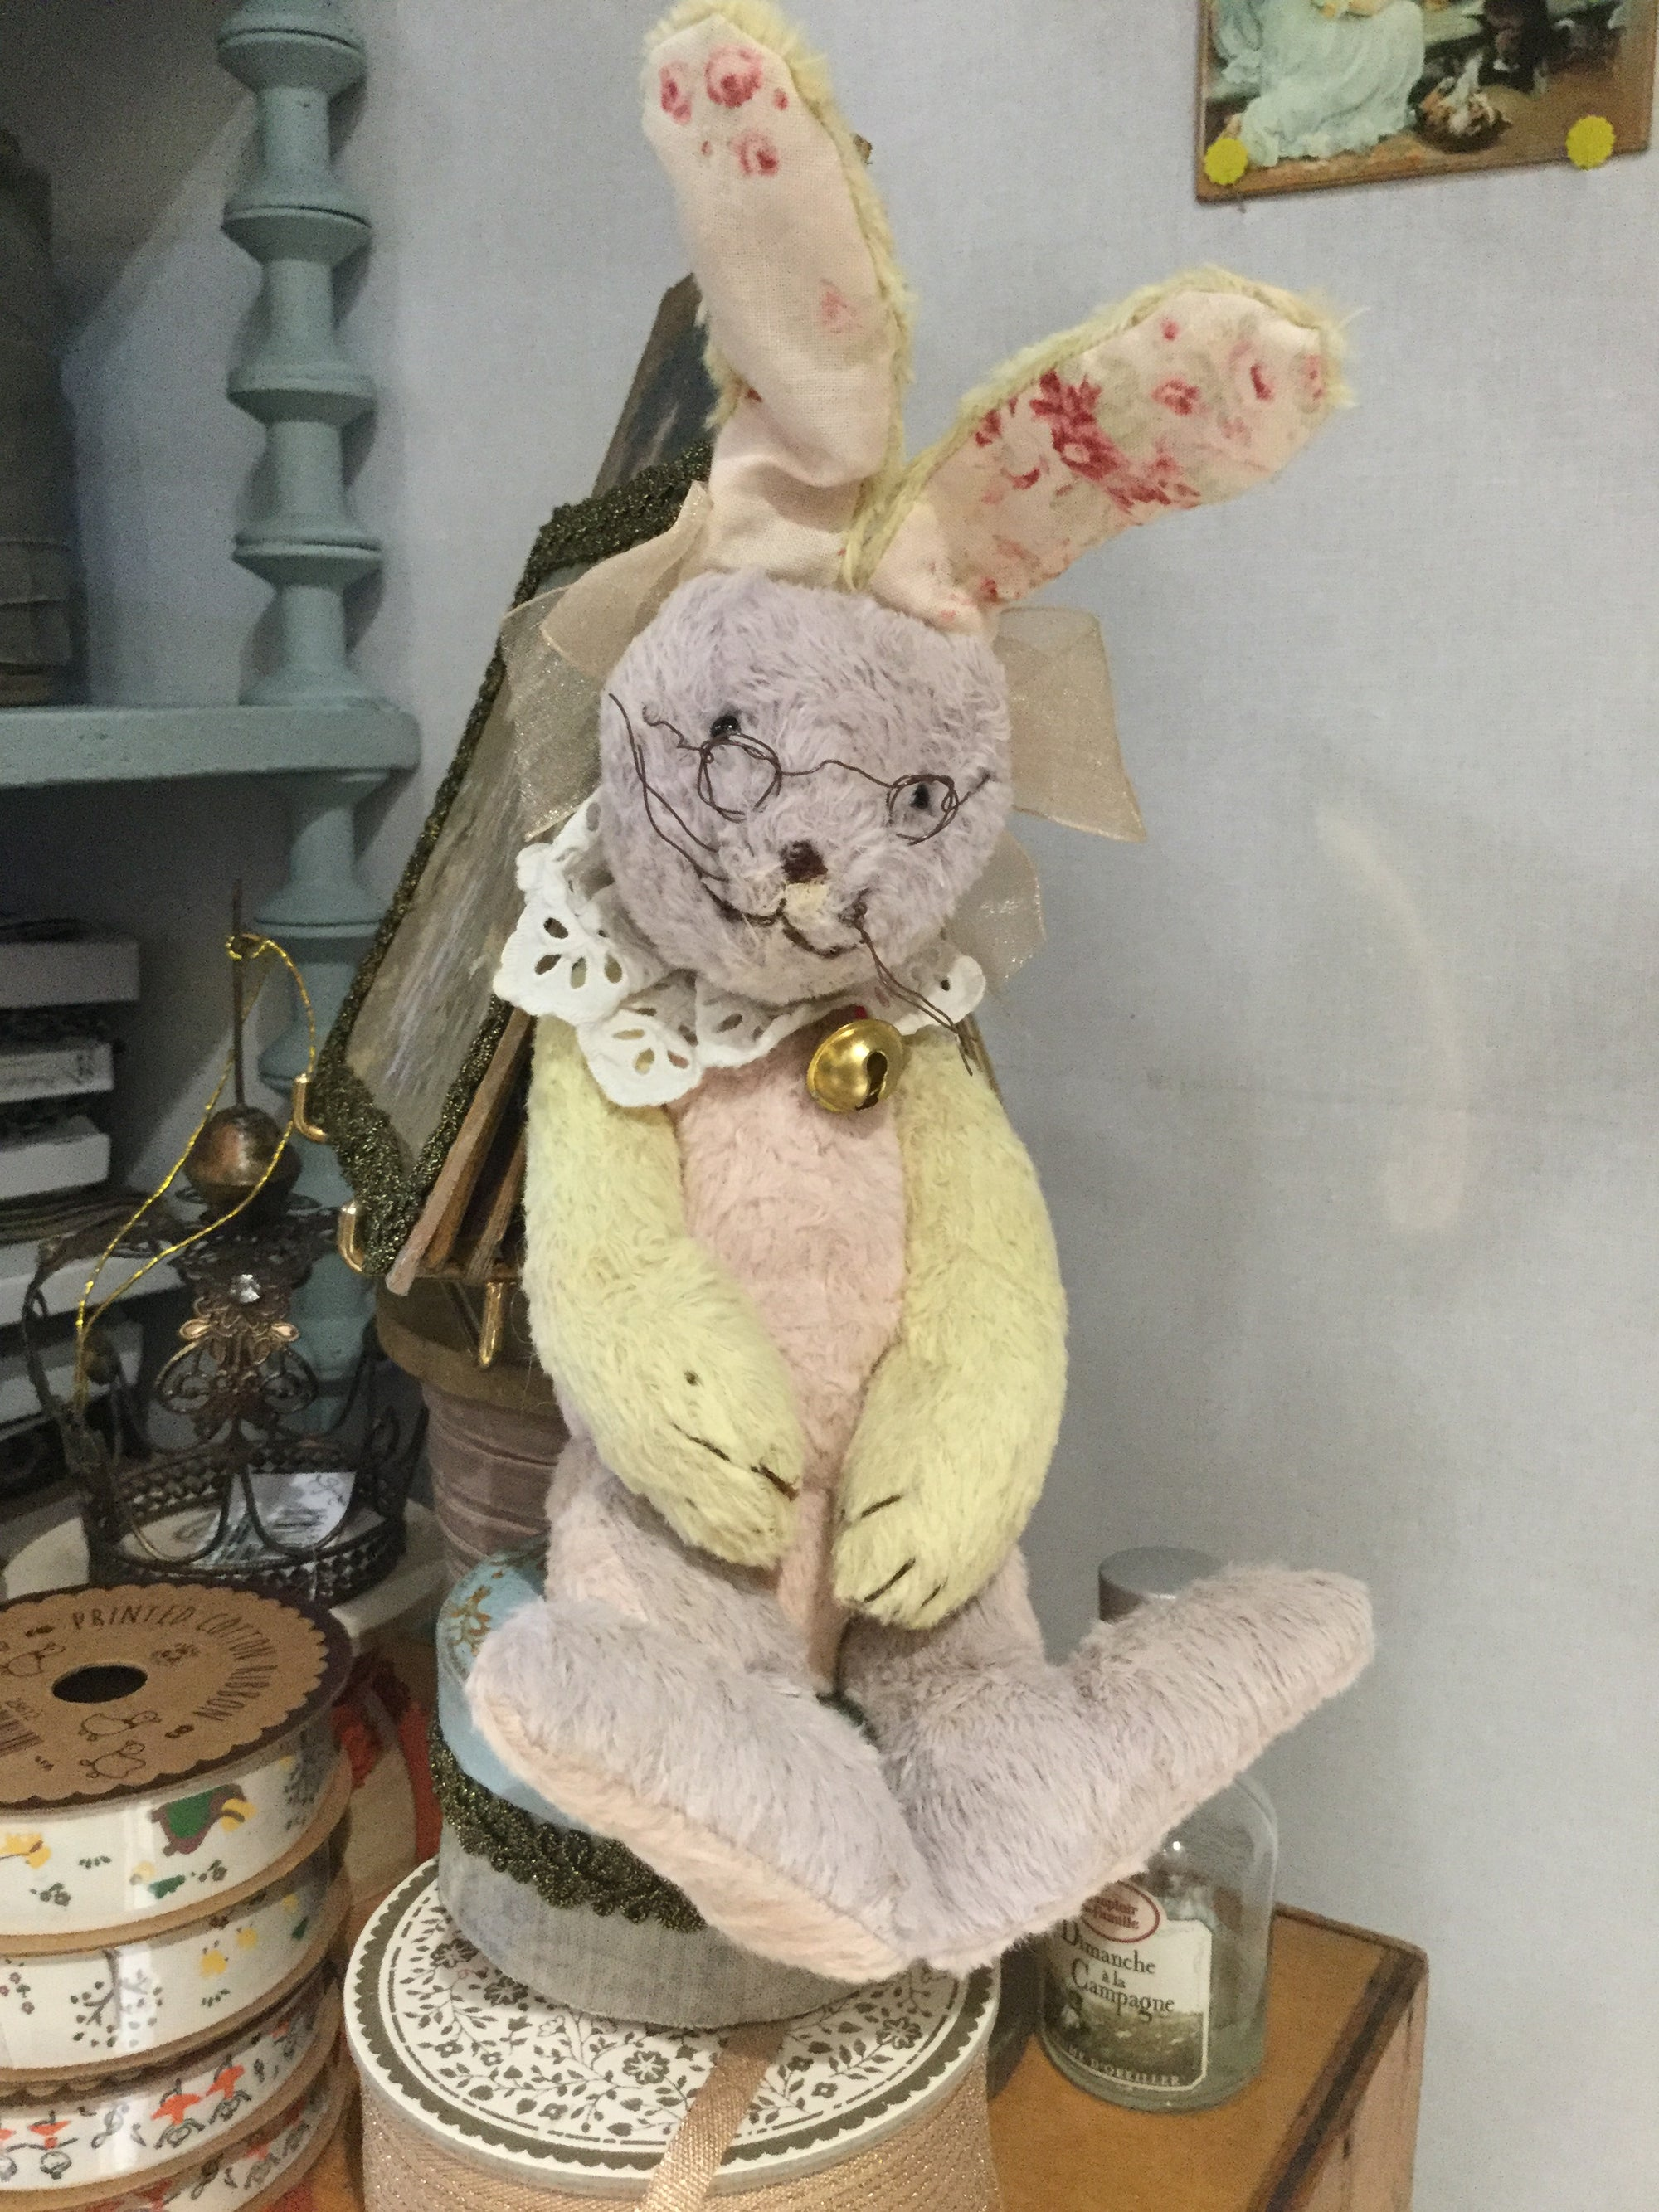 Image of Le lapin Philibert